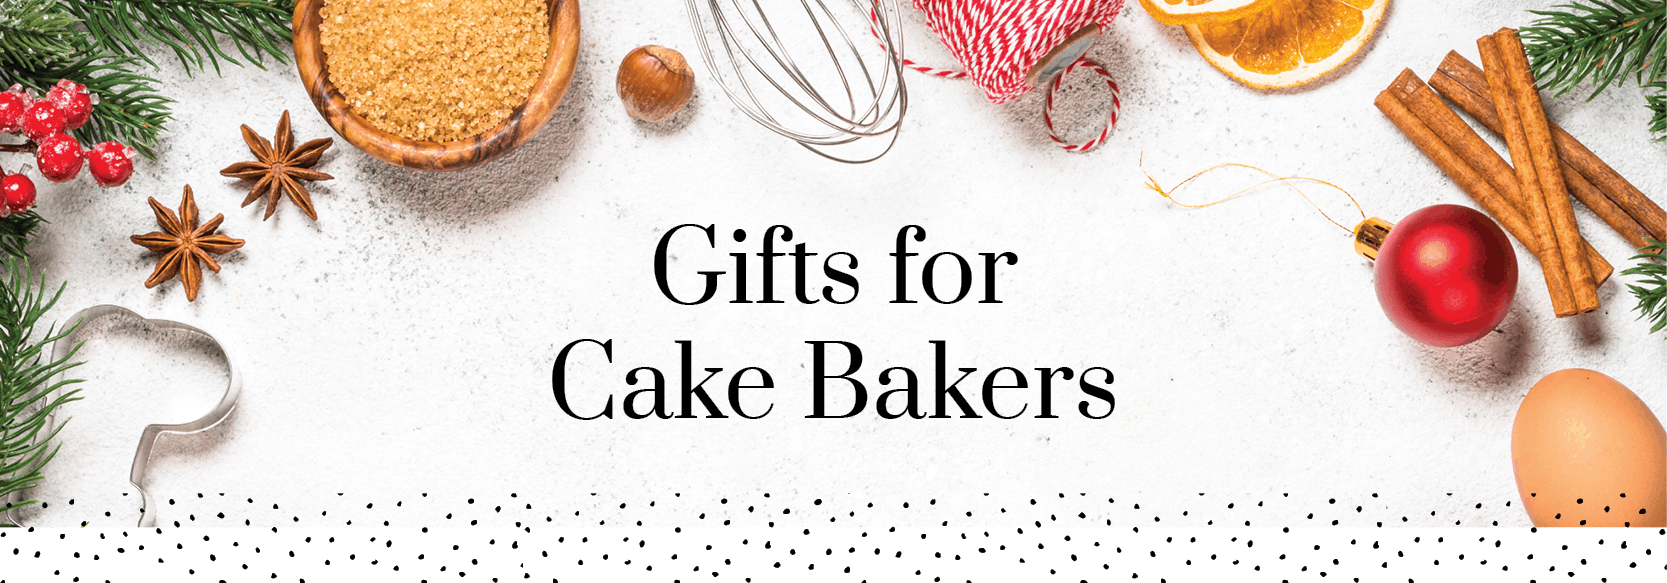 Gifts for Cake Bakers